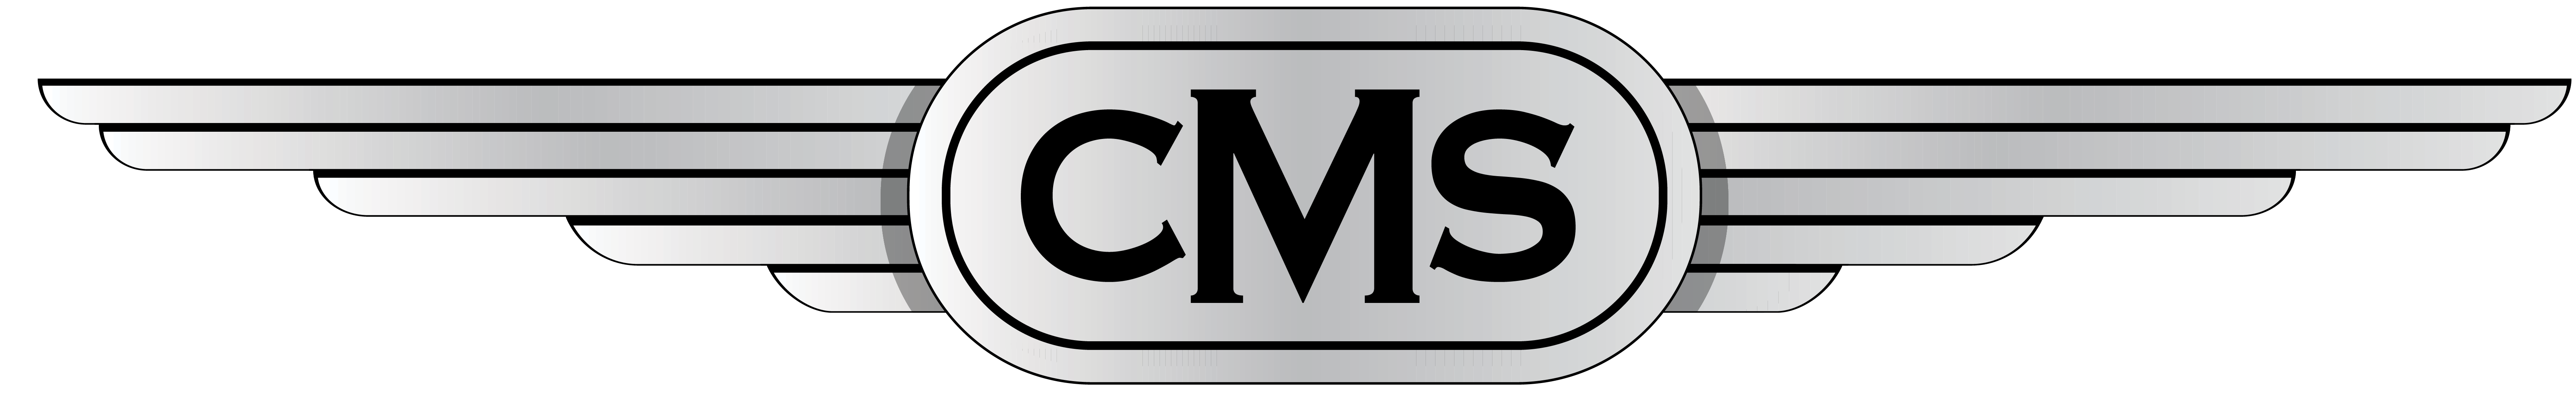 CMS-Badge-RGB